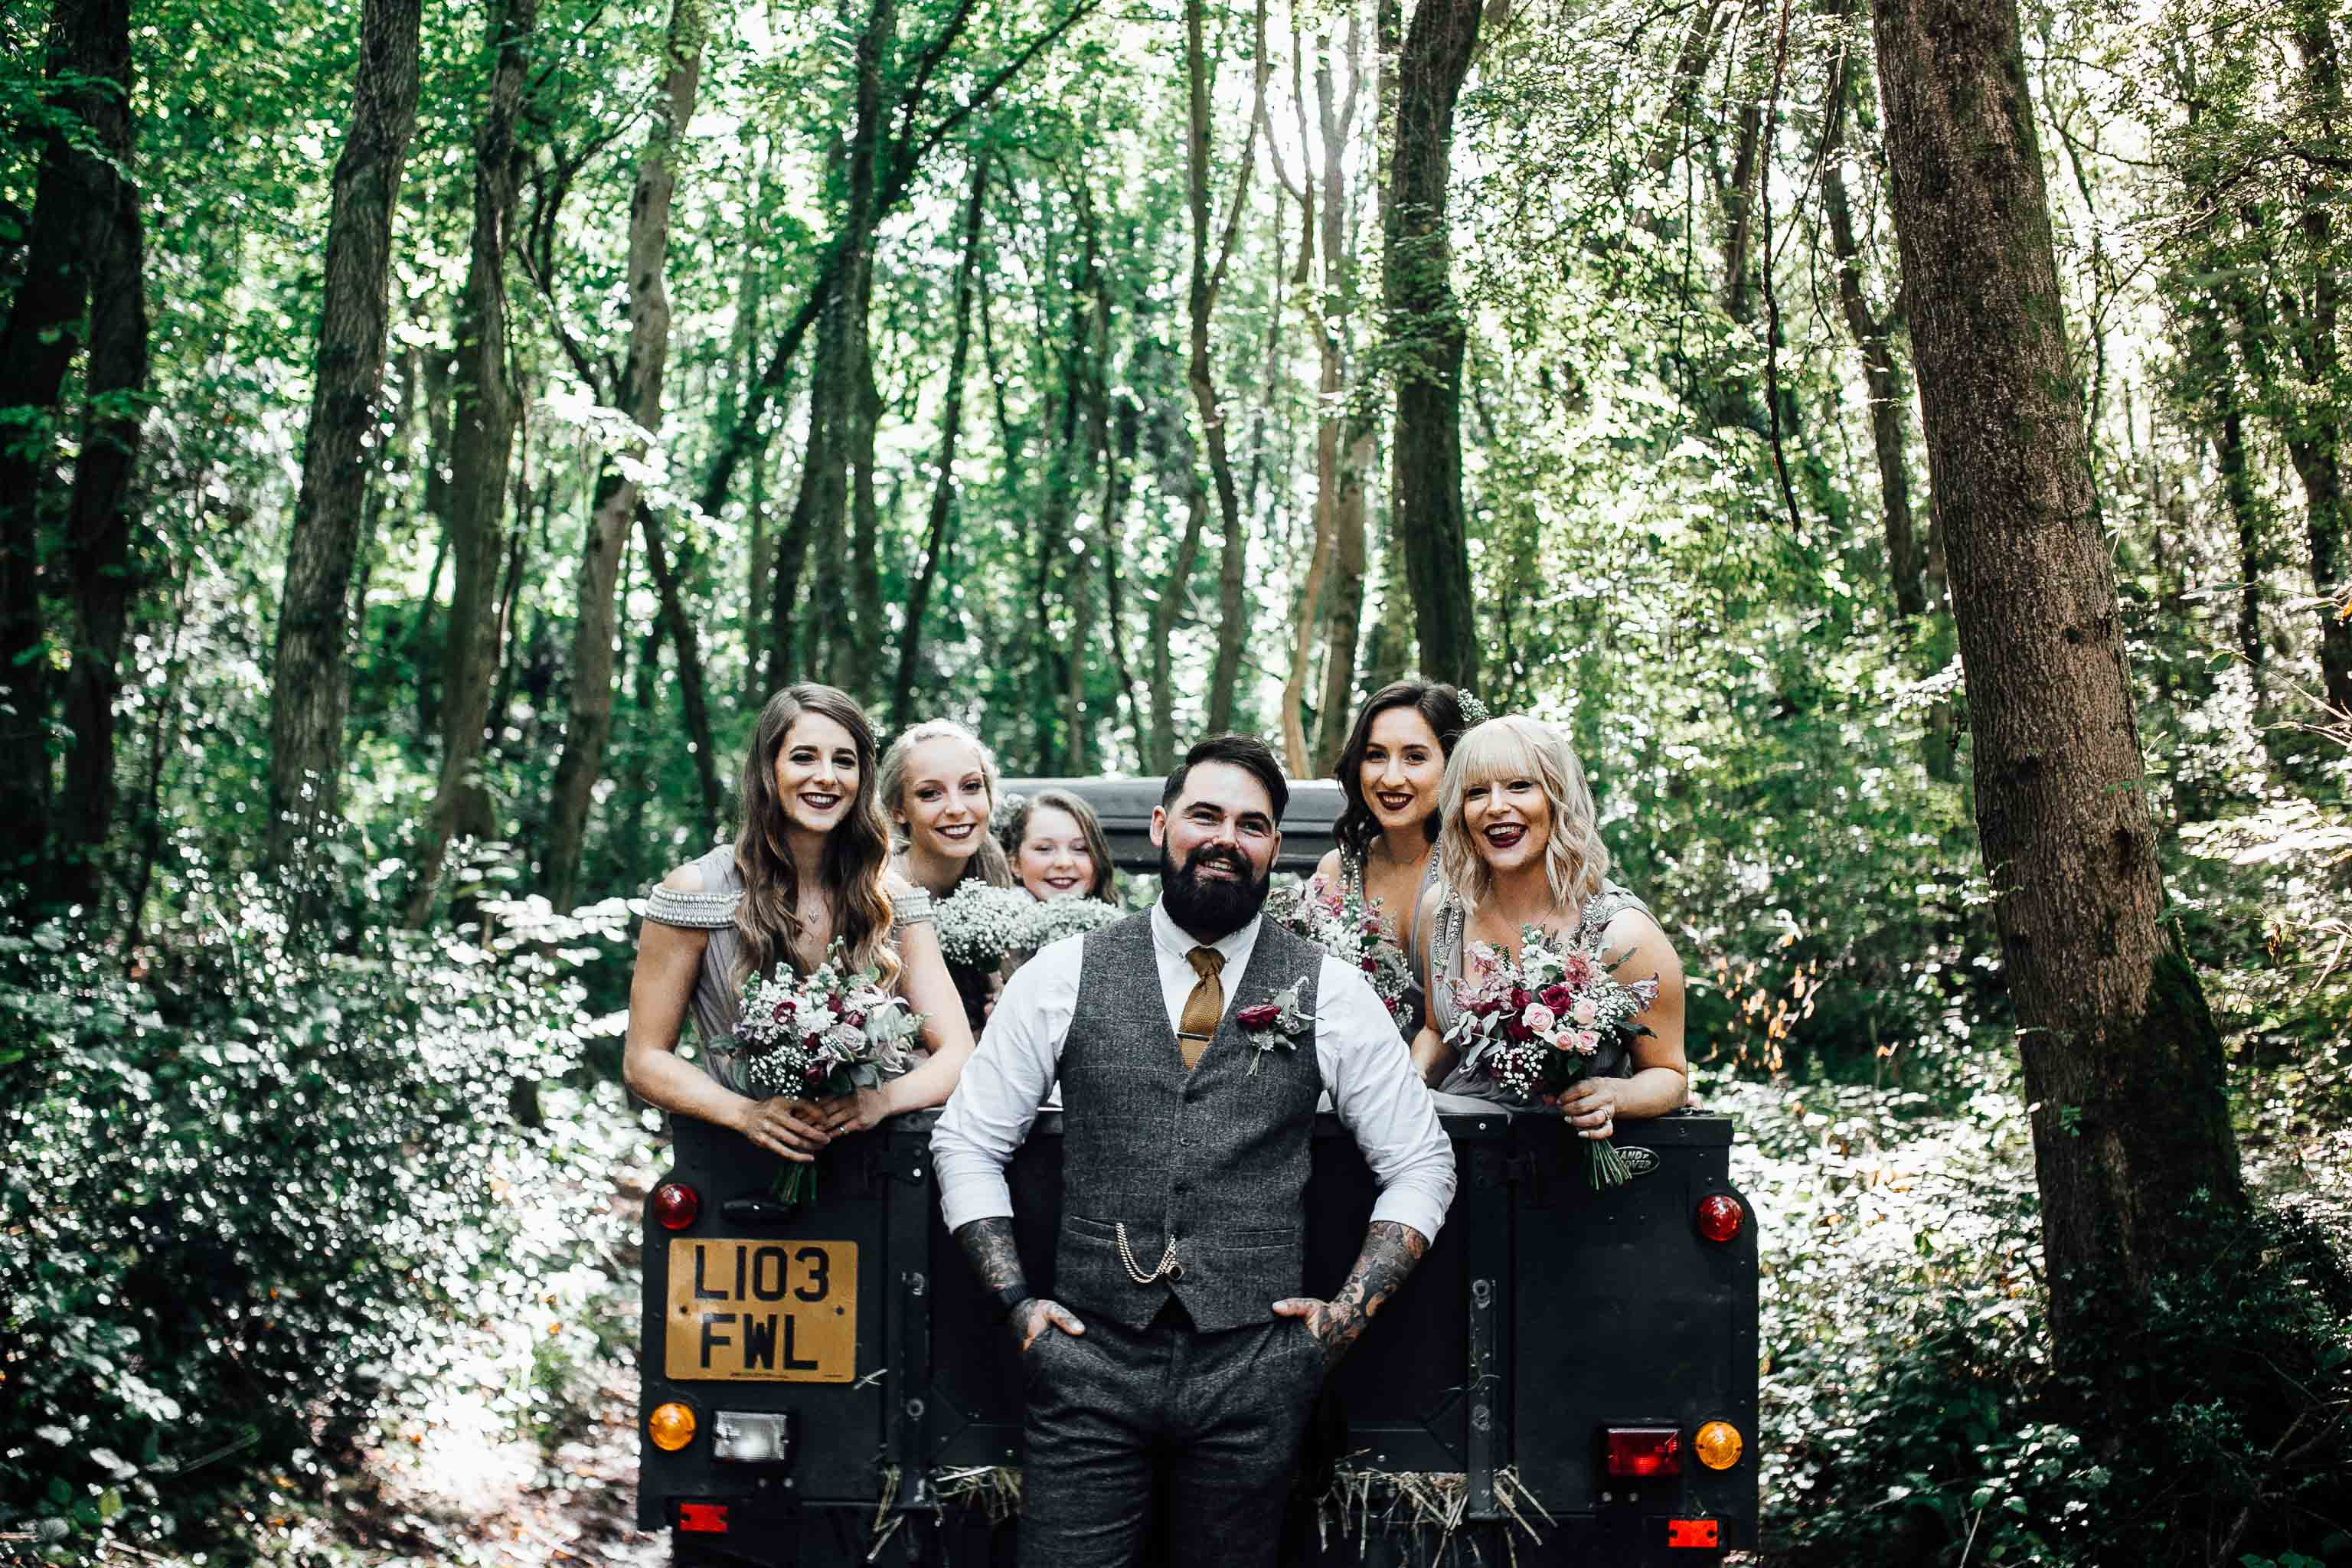 bridal party on a truck wedding transport rain